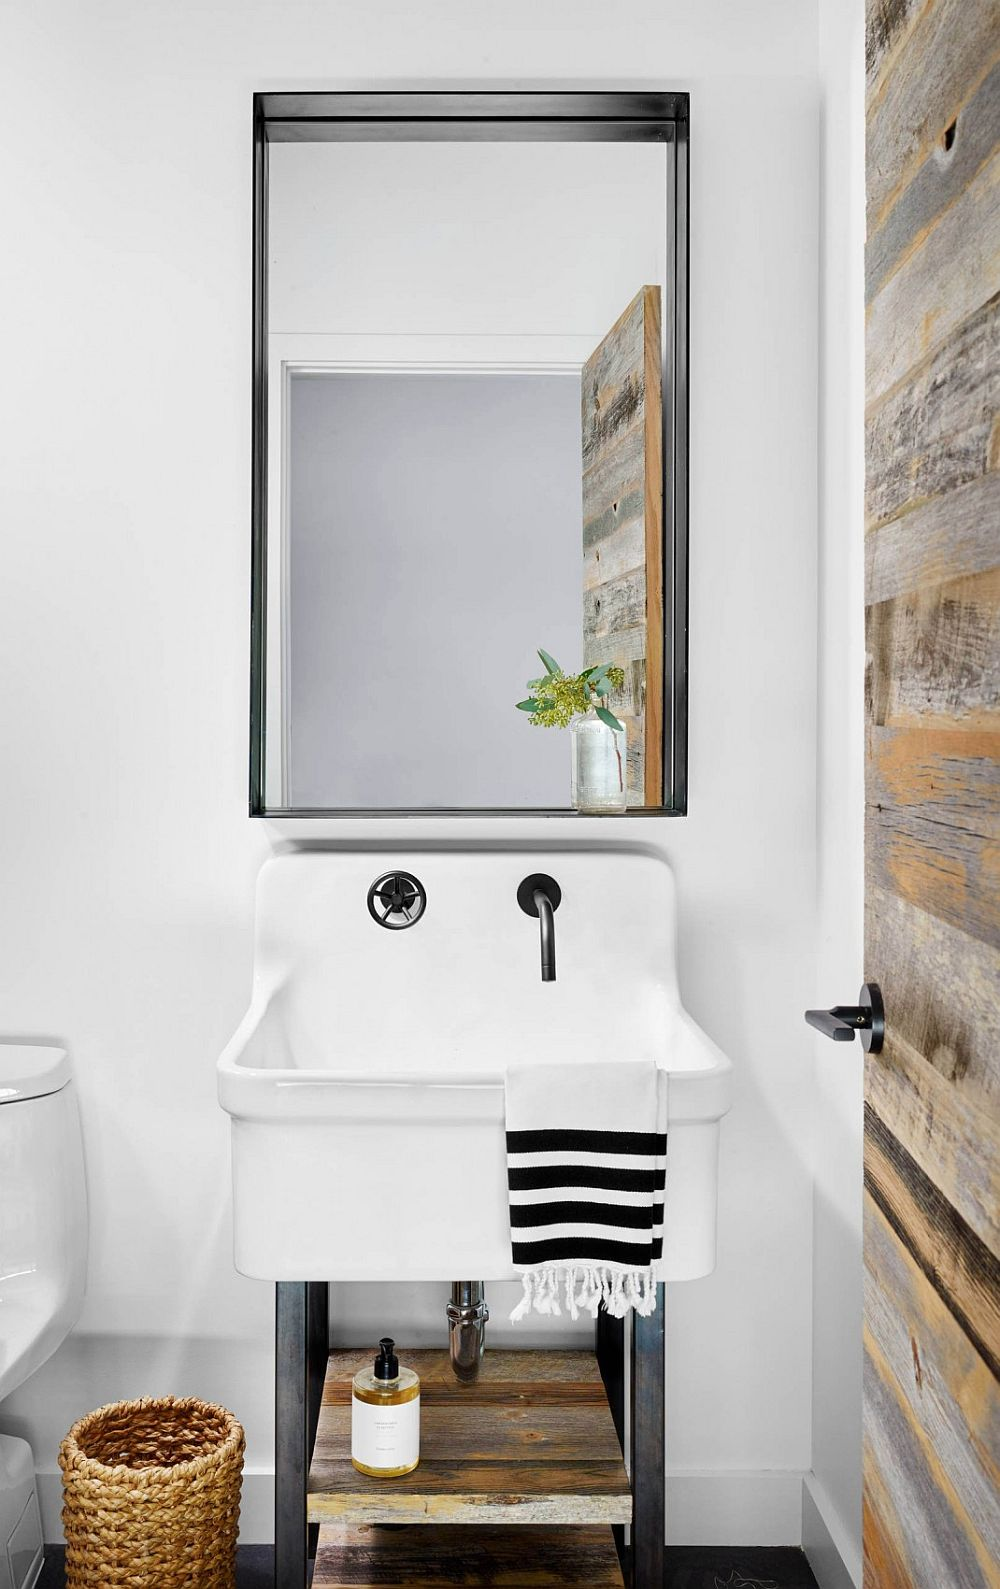 Fabulous use of reclaimed wood for the inviting modern bathroom